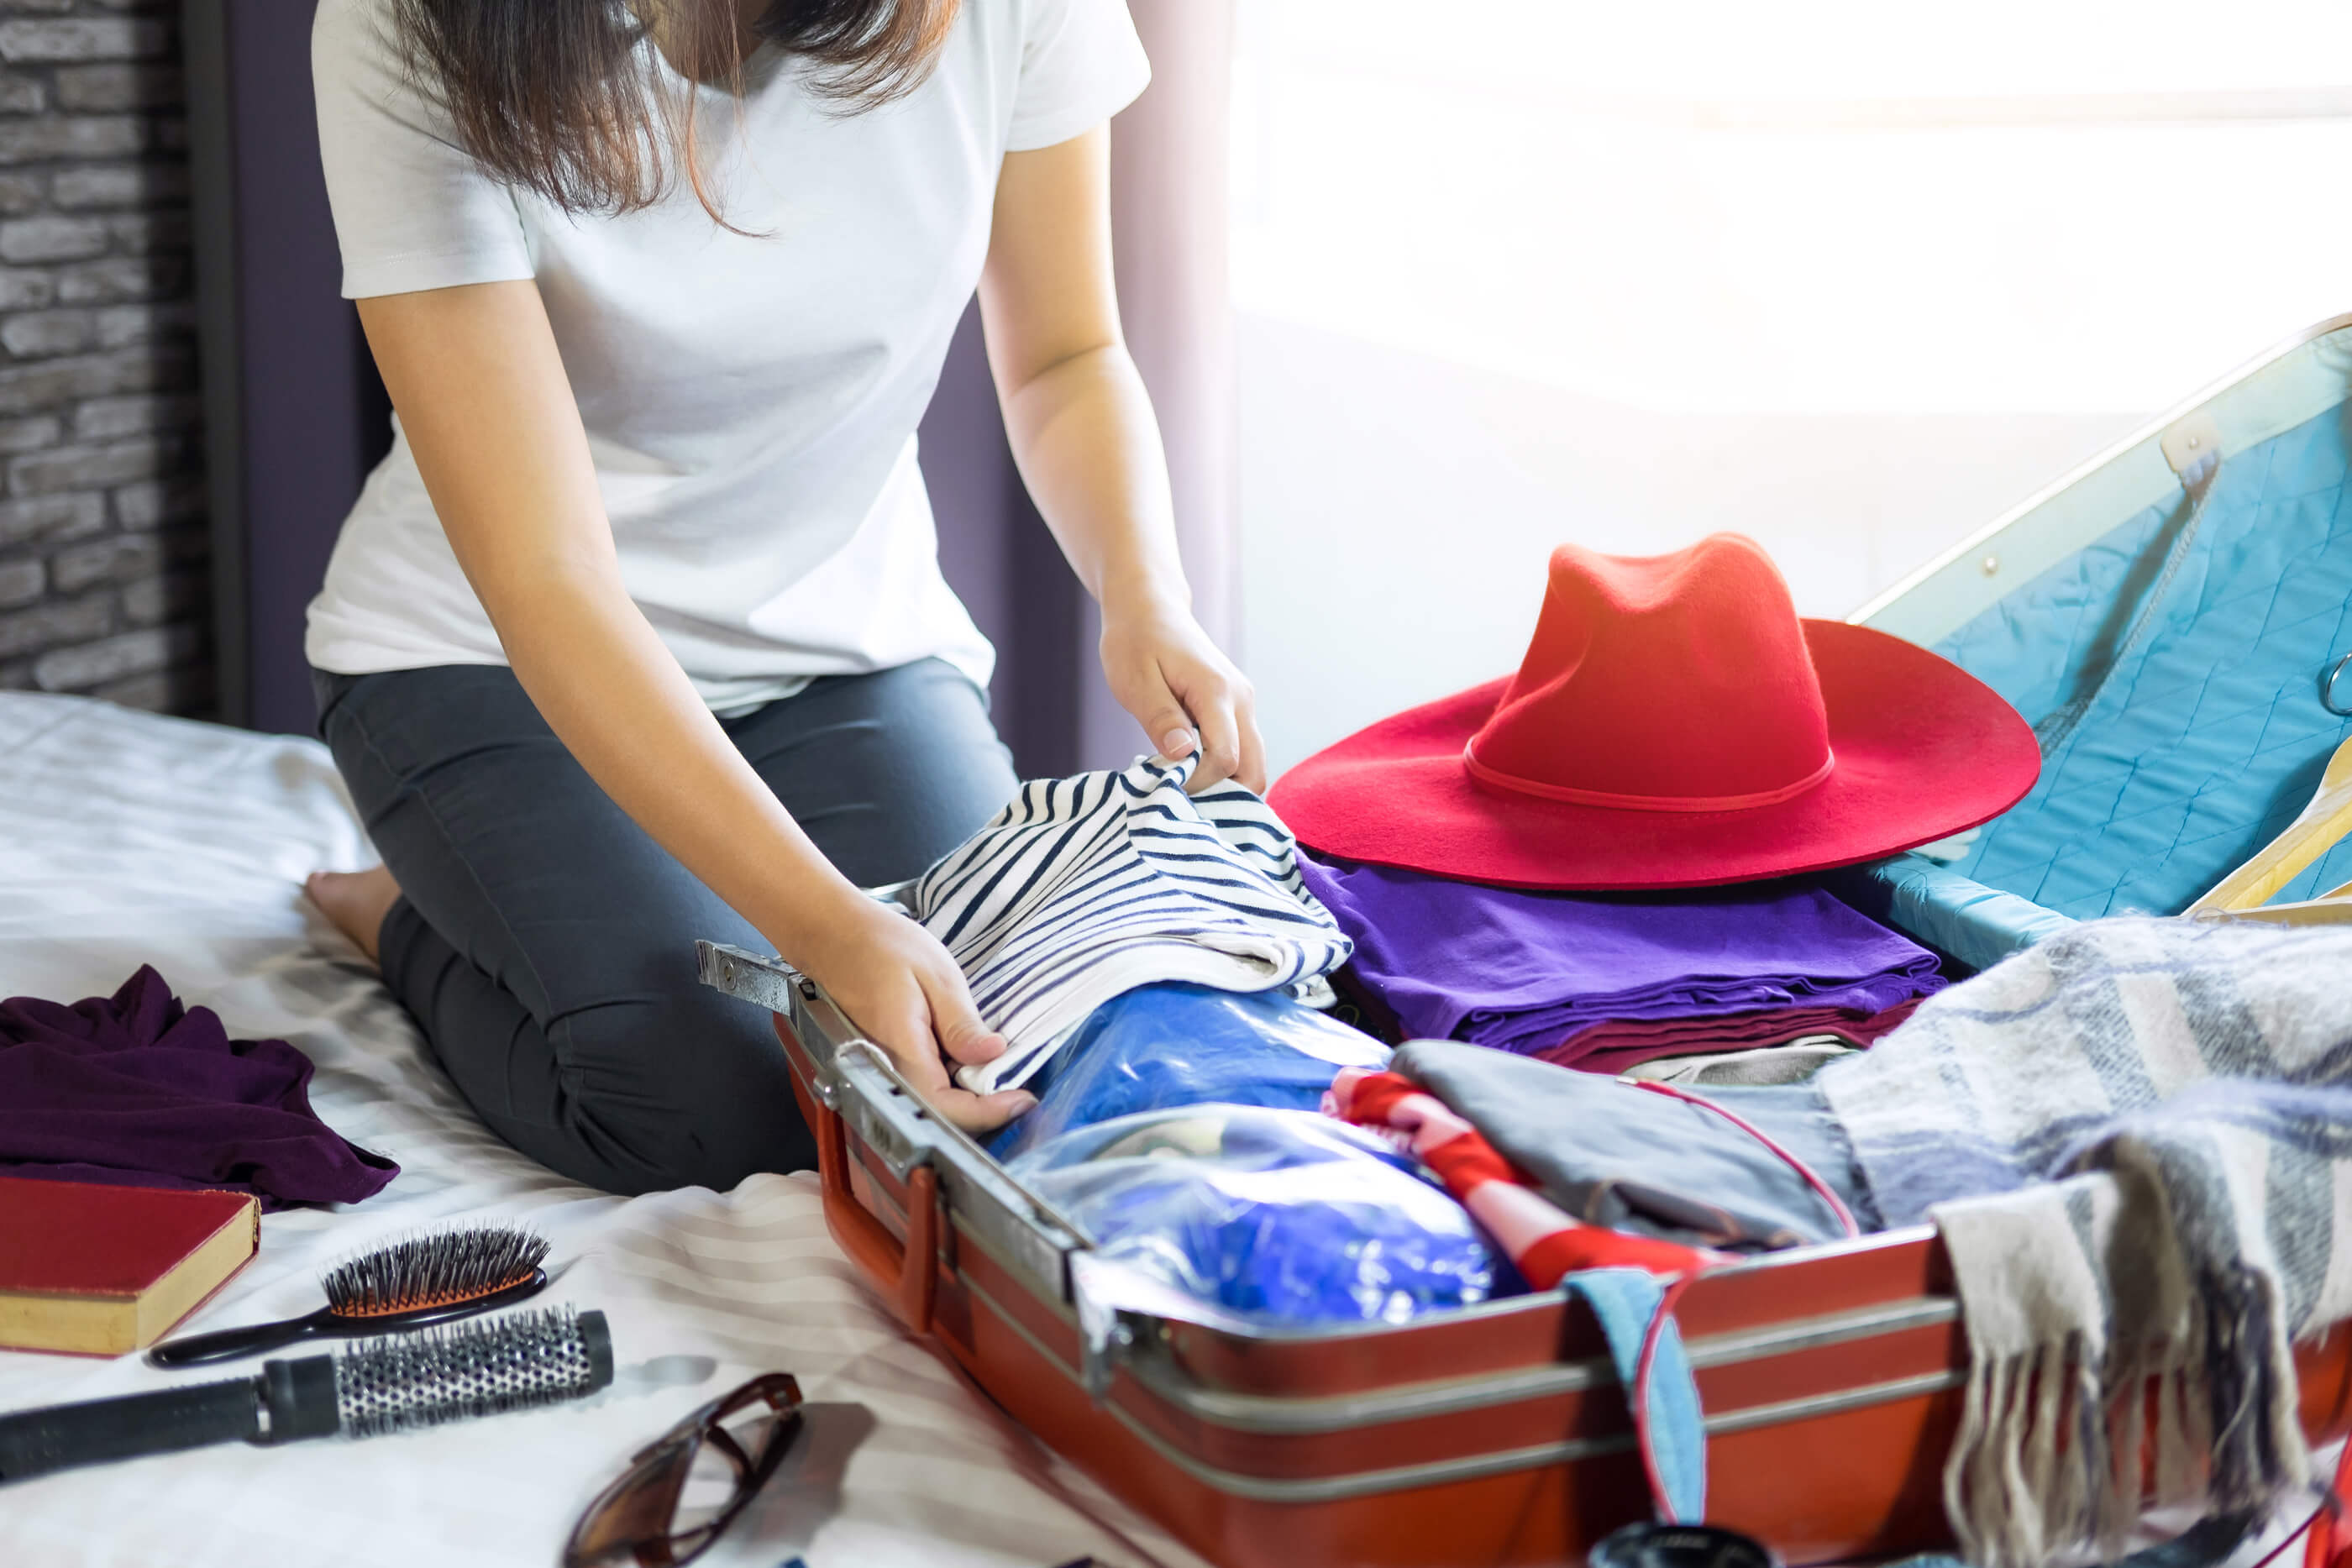 8 Important Things Every Frequent Overseas Traveler Should Have - Acko